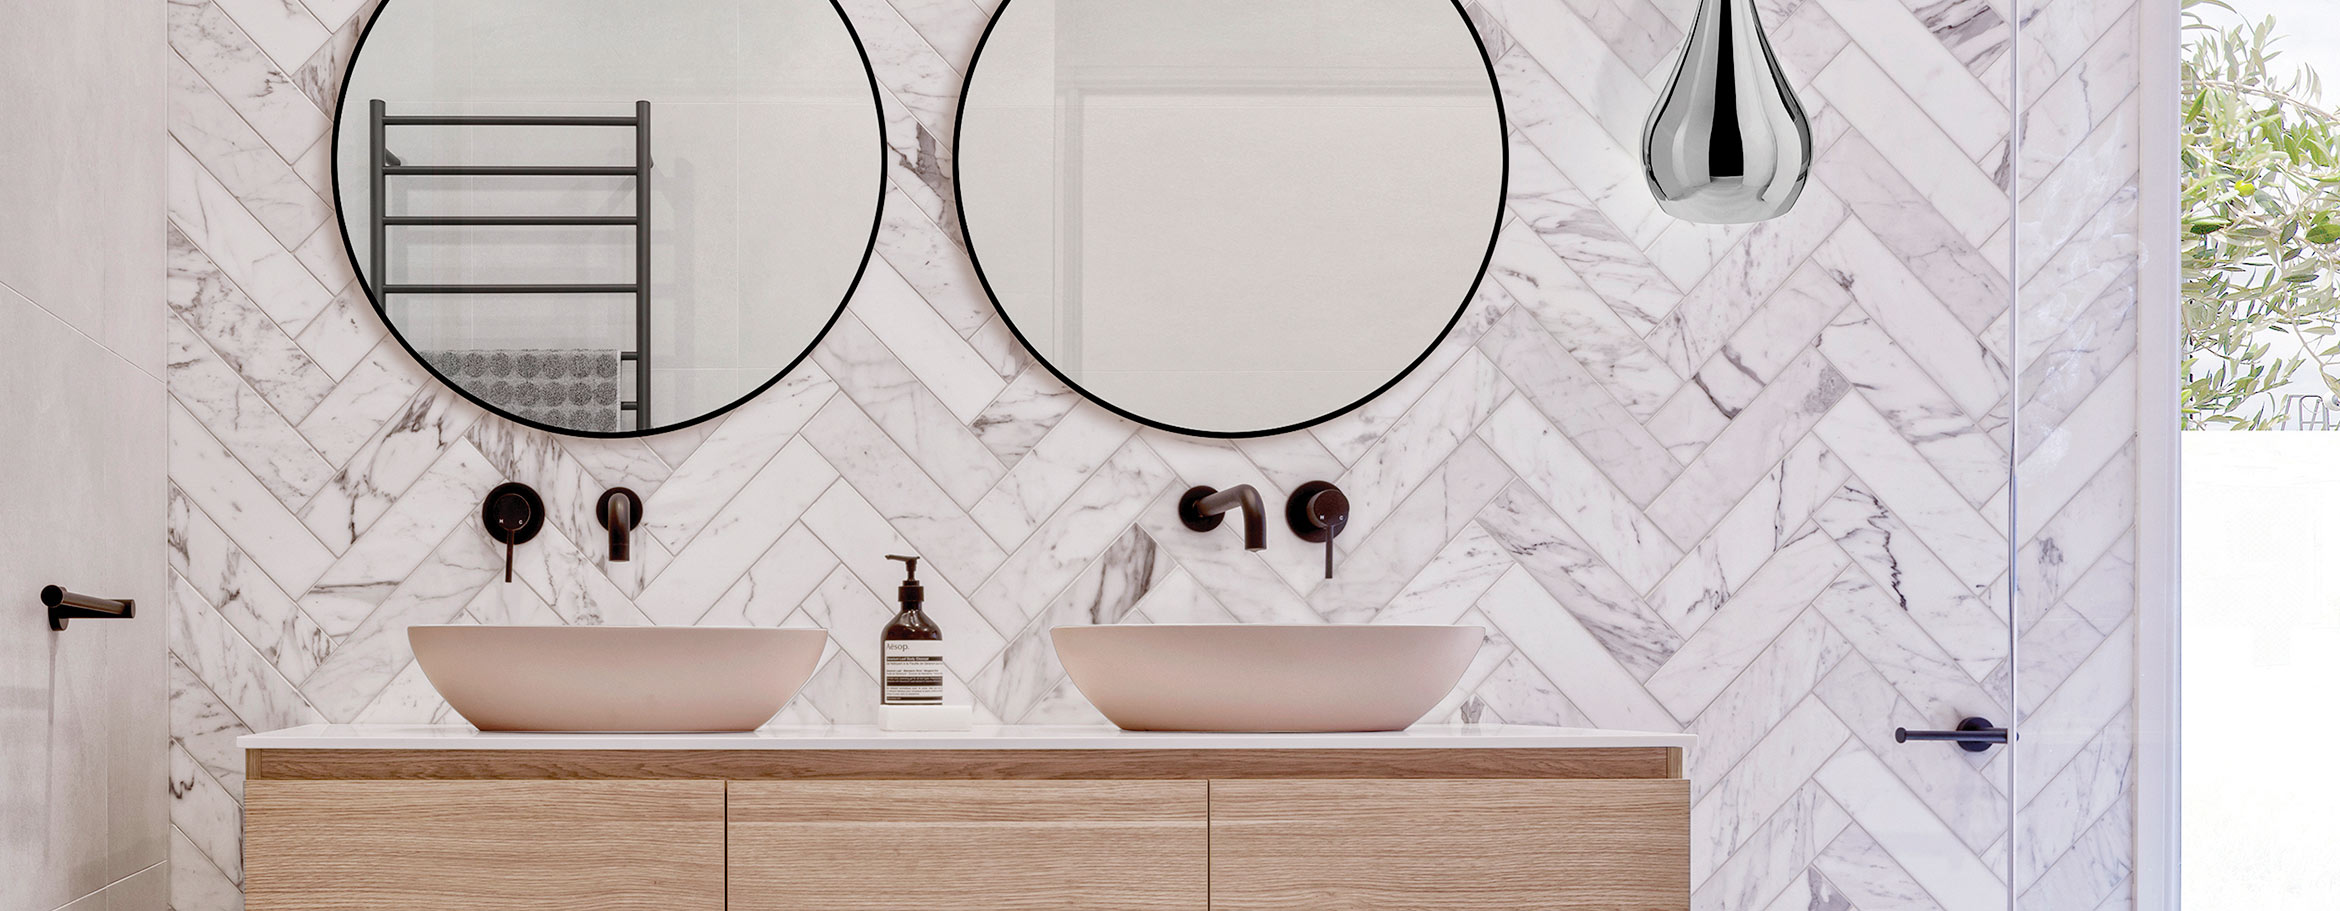 Victoria + Albert custom painted baths and basins by Luxe by Design, Australia.